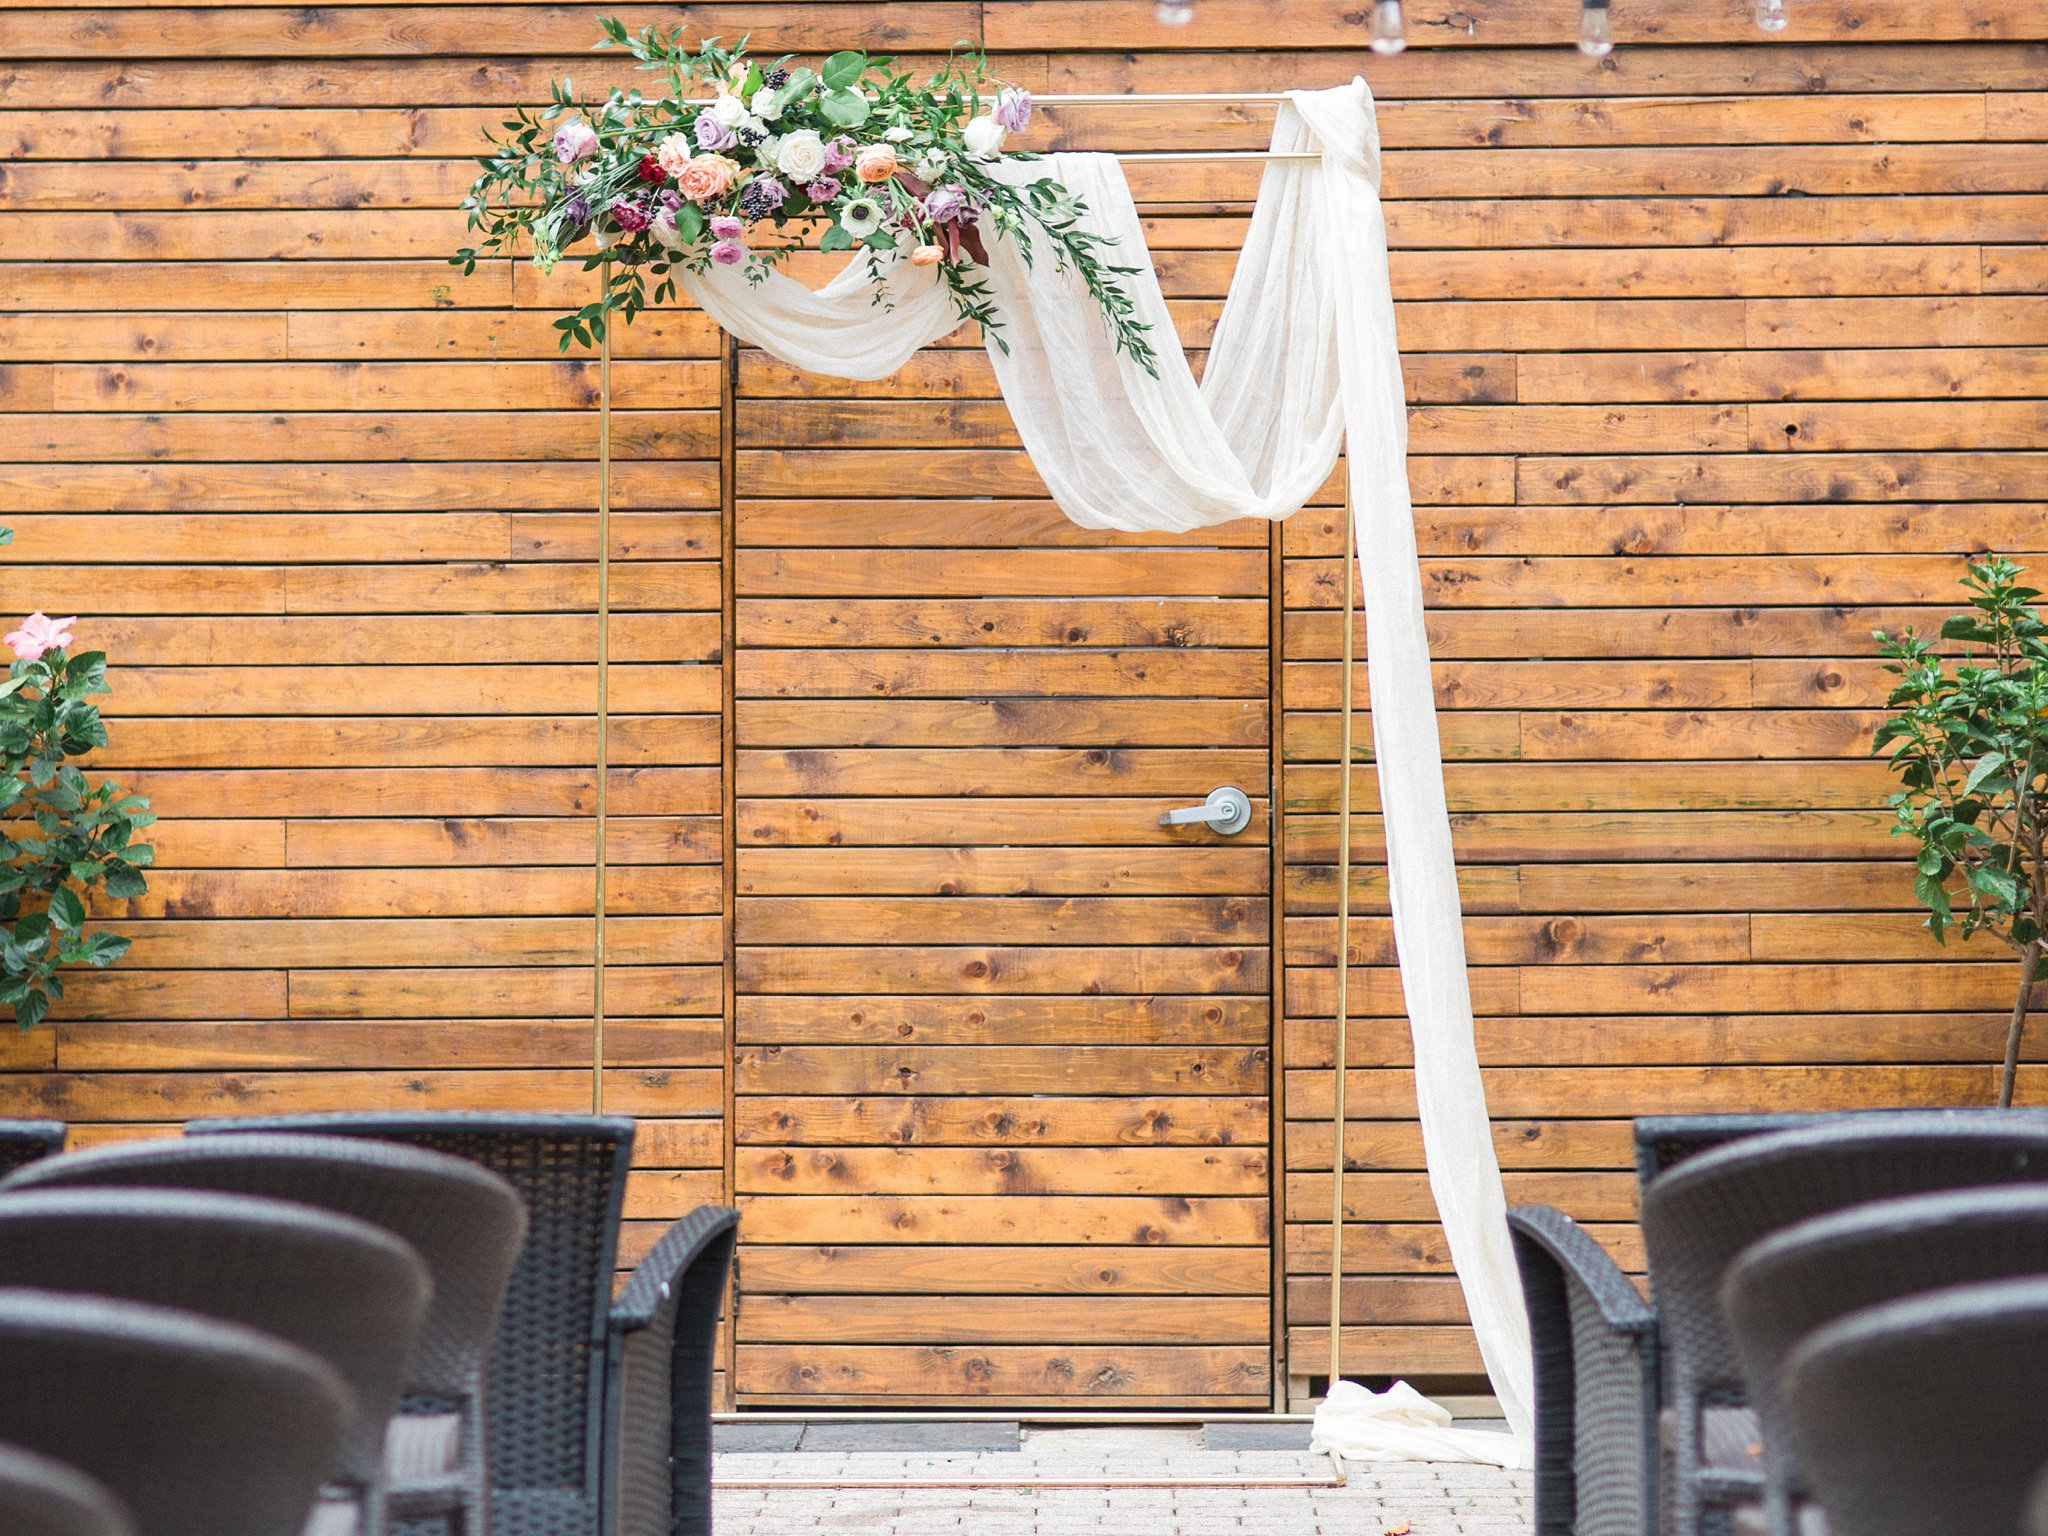 Metallic gold ceremony arch with soft drapery and florals Ottawa restaurant wedding at Sidedoor Restaurant